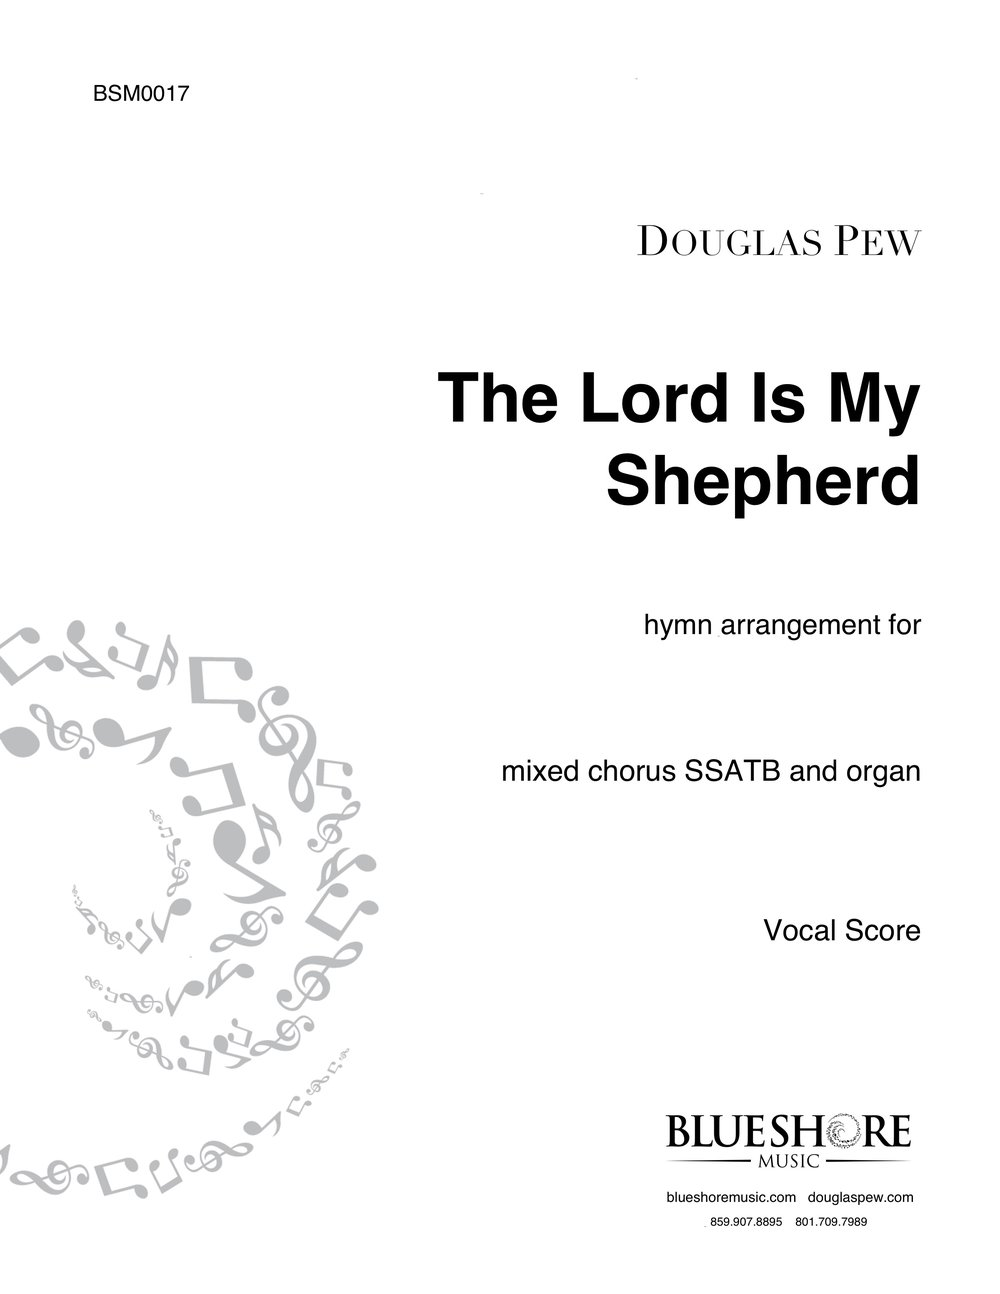 The Lord Is My Shepherd, Hymn Arrangement for SSATB and Organ